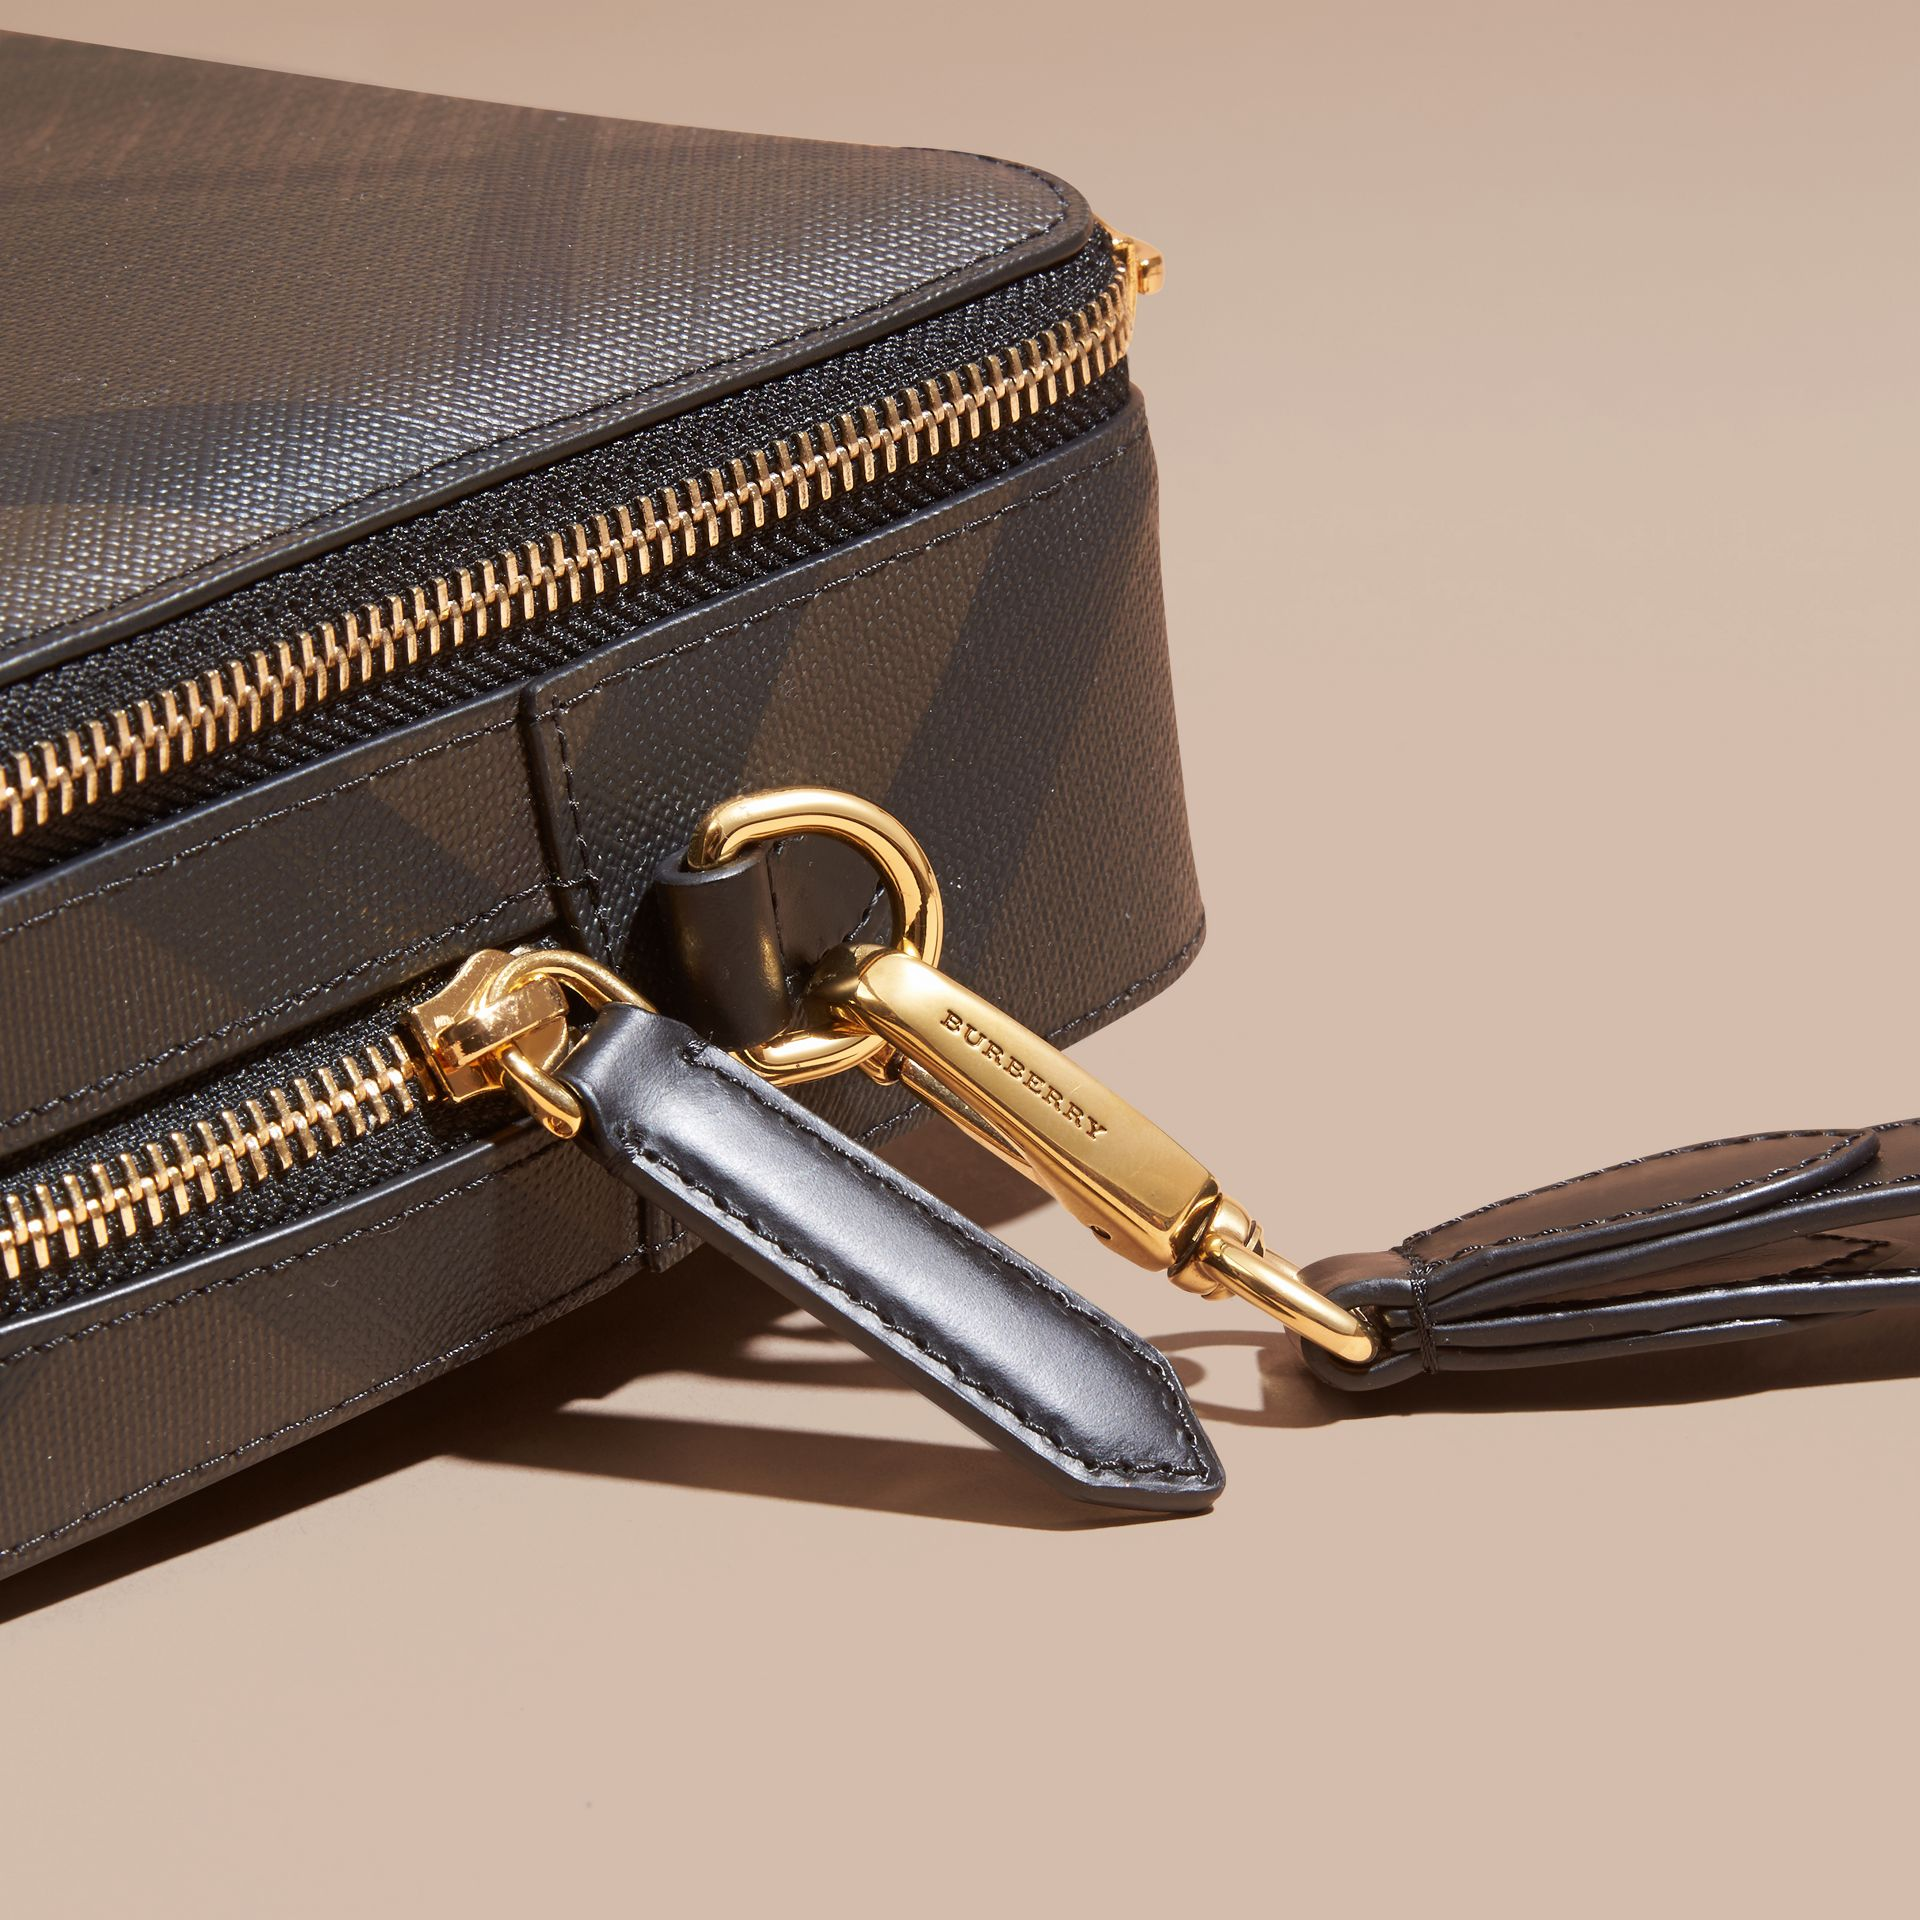 Leather-trimmed London Check Pouch in Chocolate/black - Men | Burberry Canada - gallery image 2